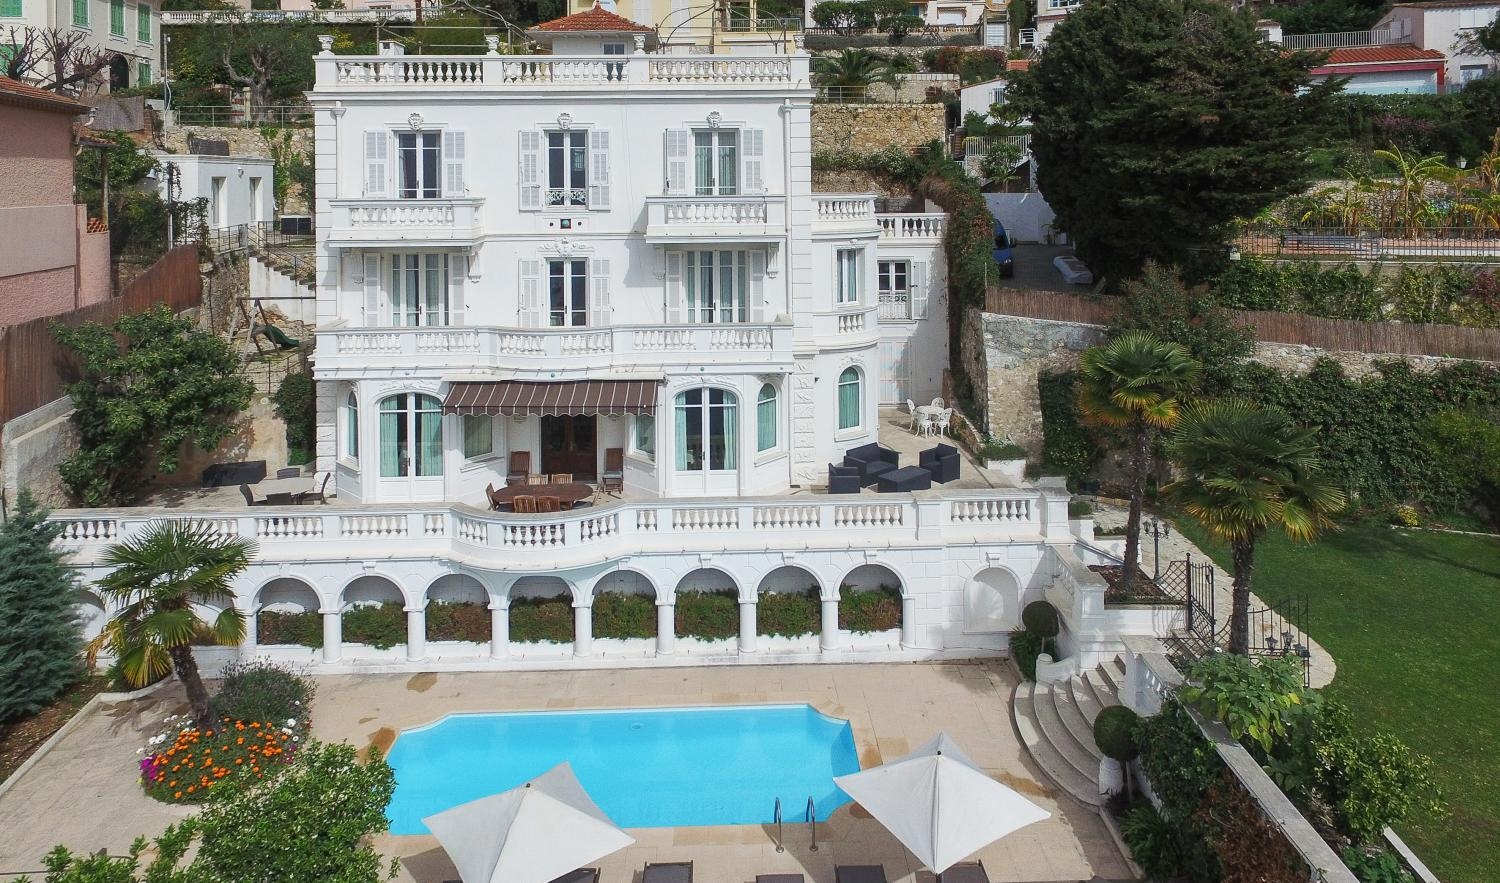 Cote d'Azur luxury villa with pool and sea views